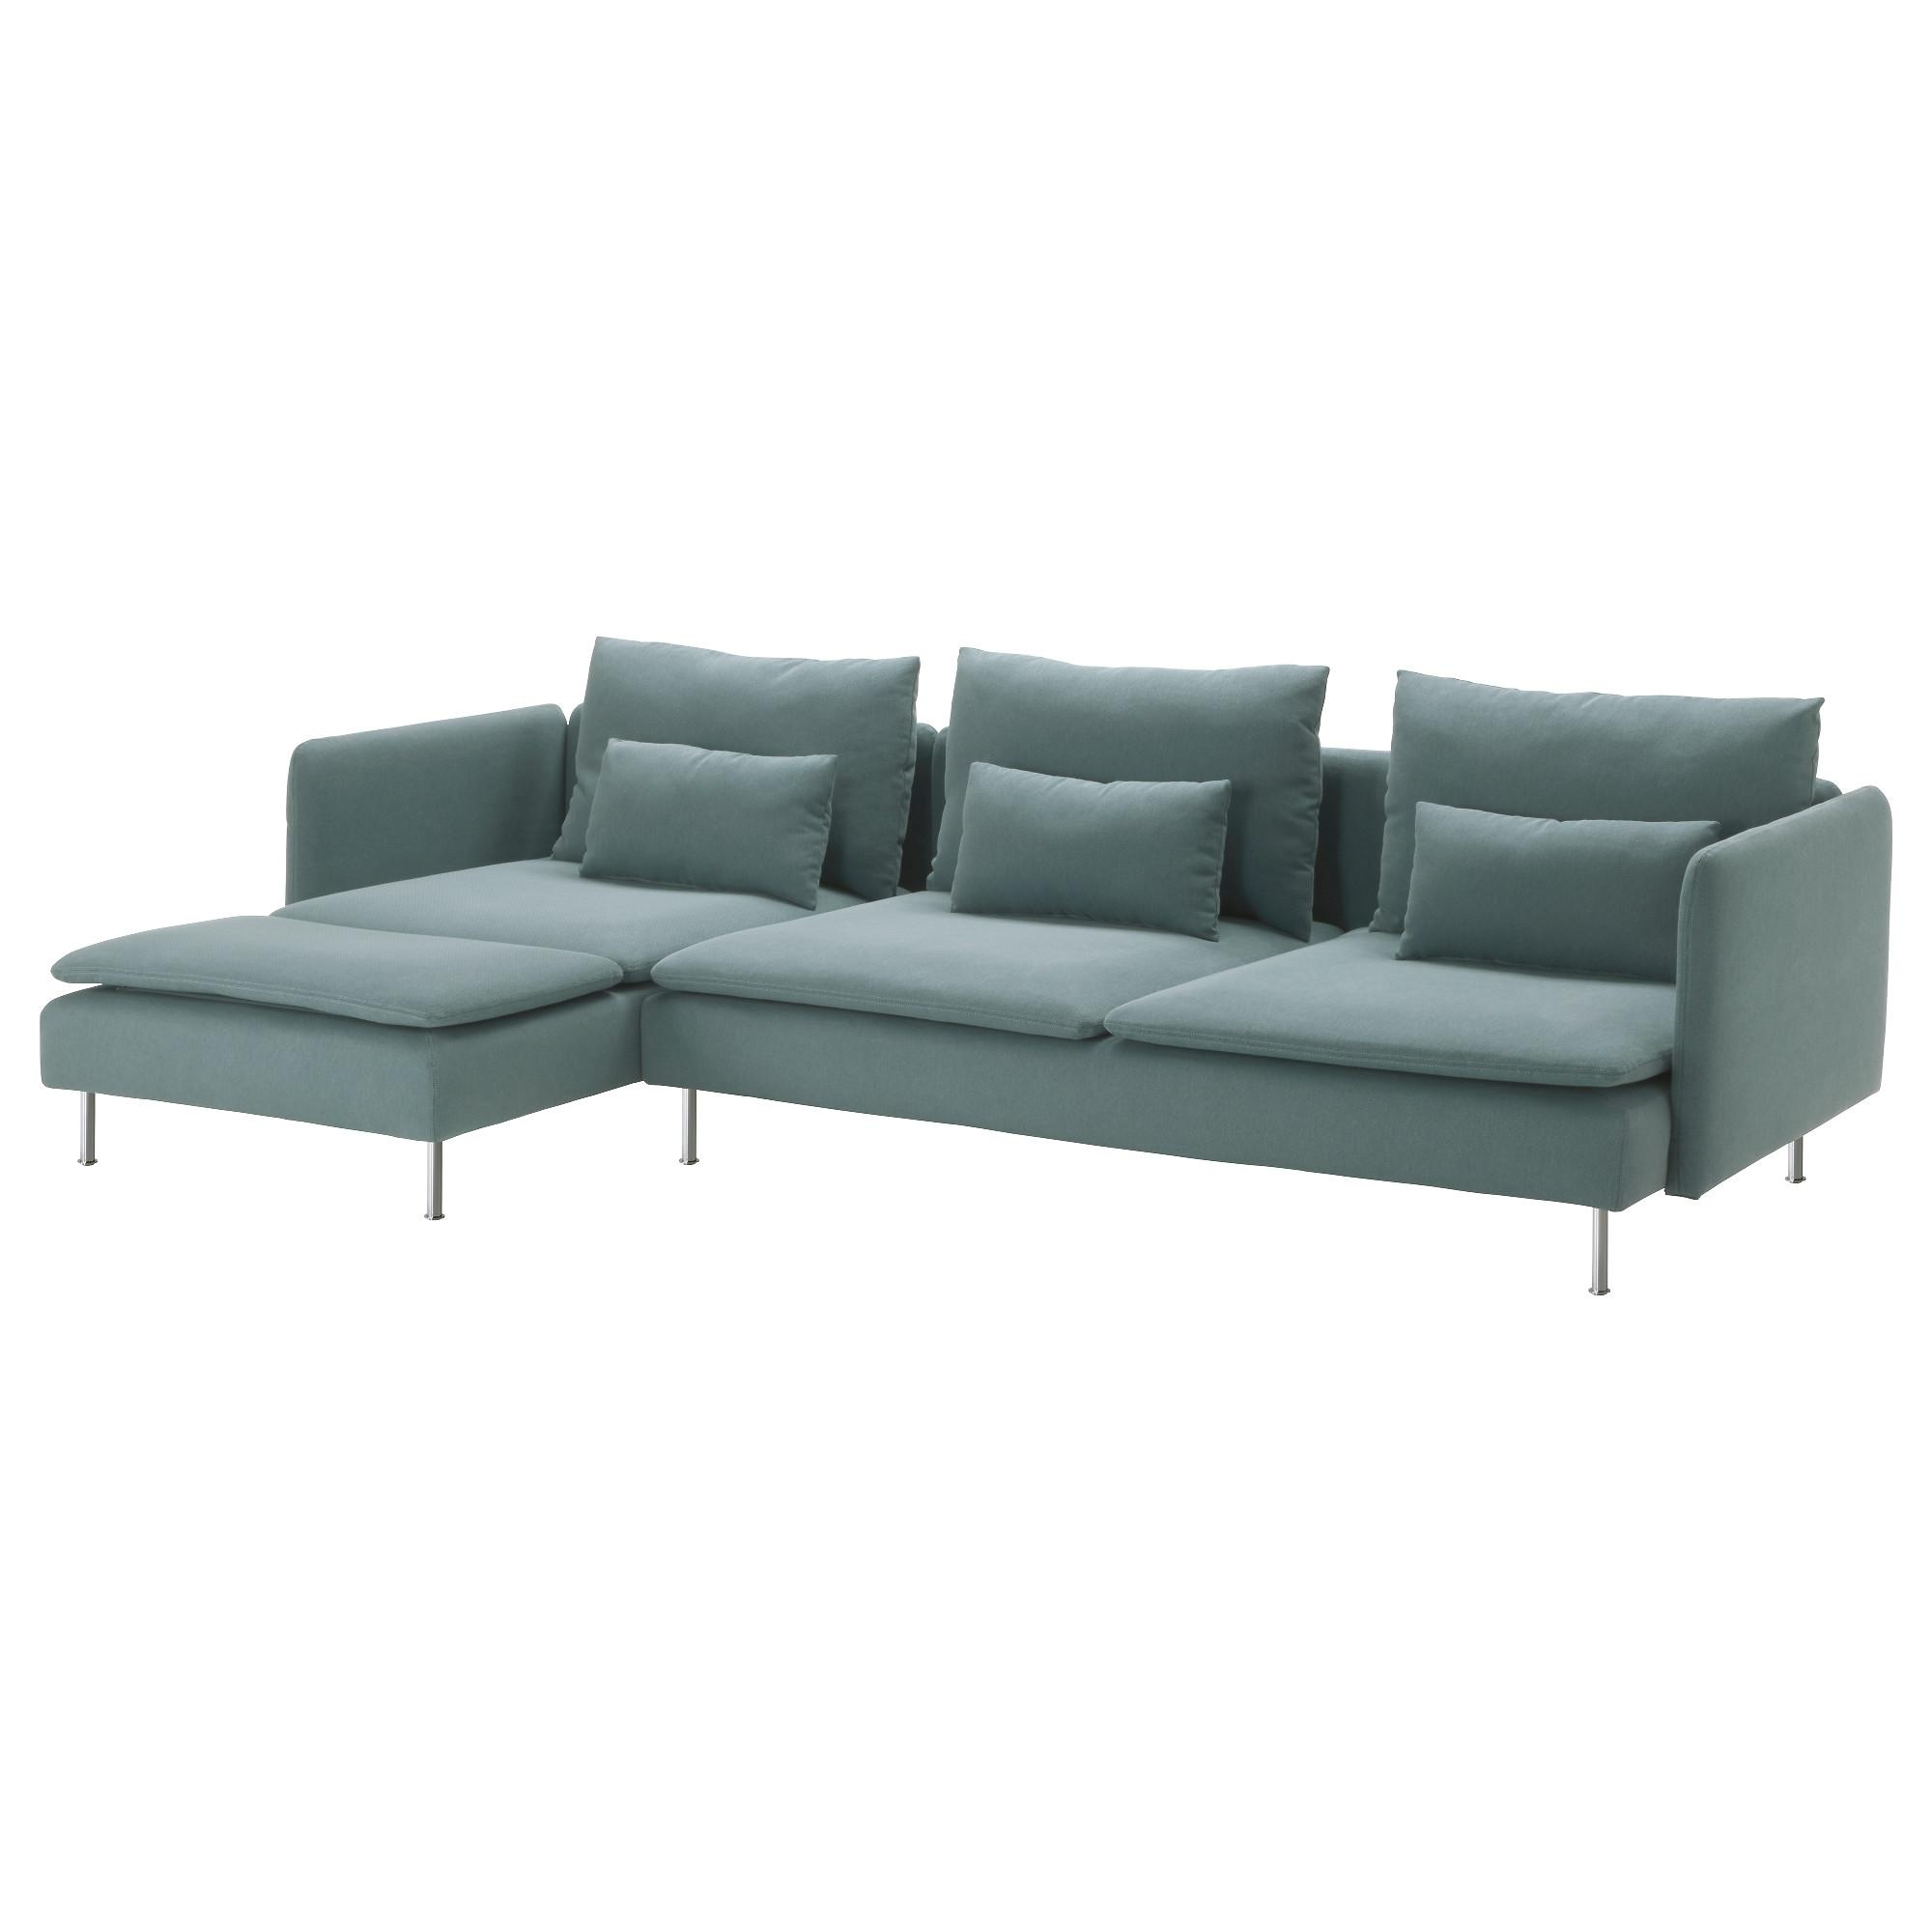 Sectional Sofas & Couches – Ikea Inside Ikea Sectional Sofa Sleeper (Image 14 of 20)